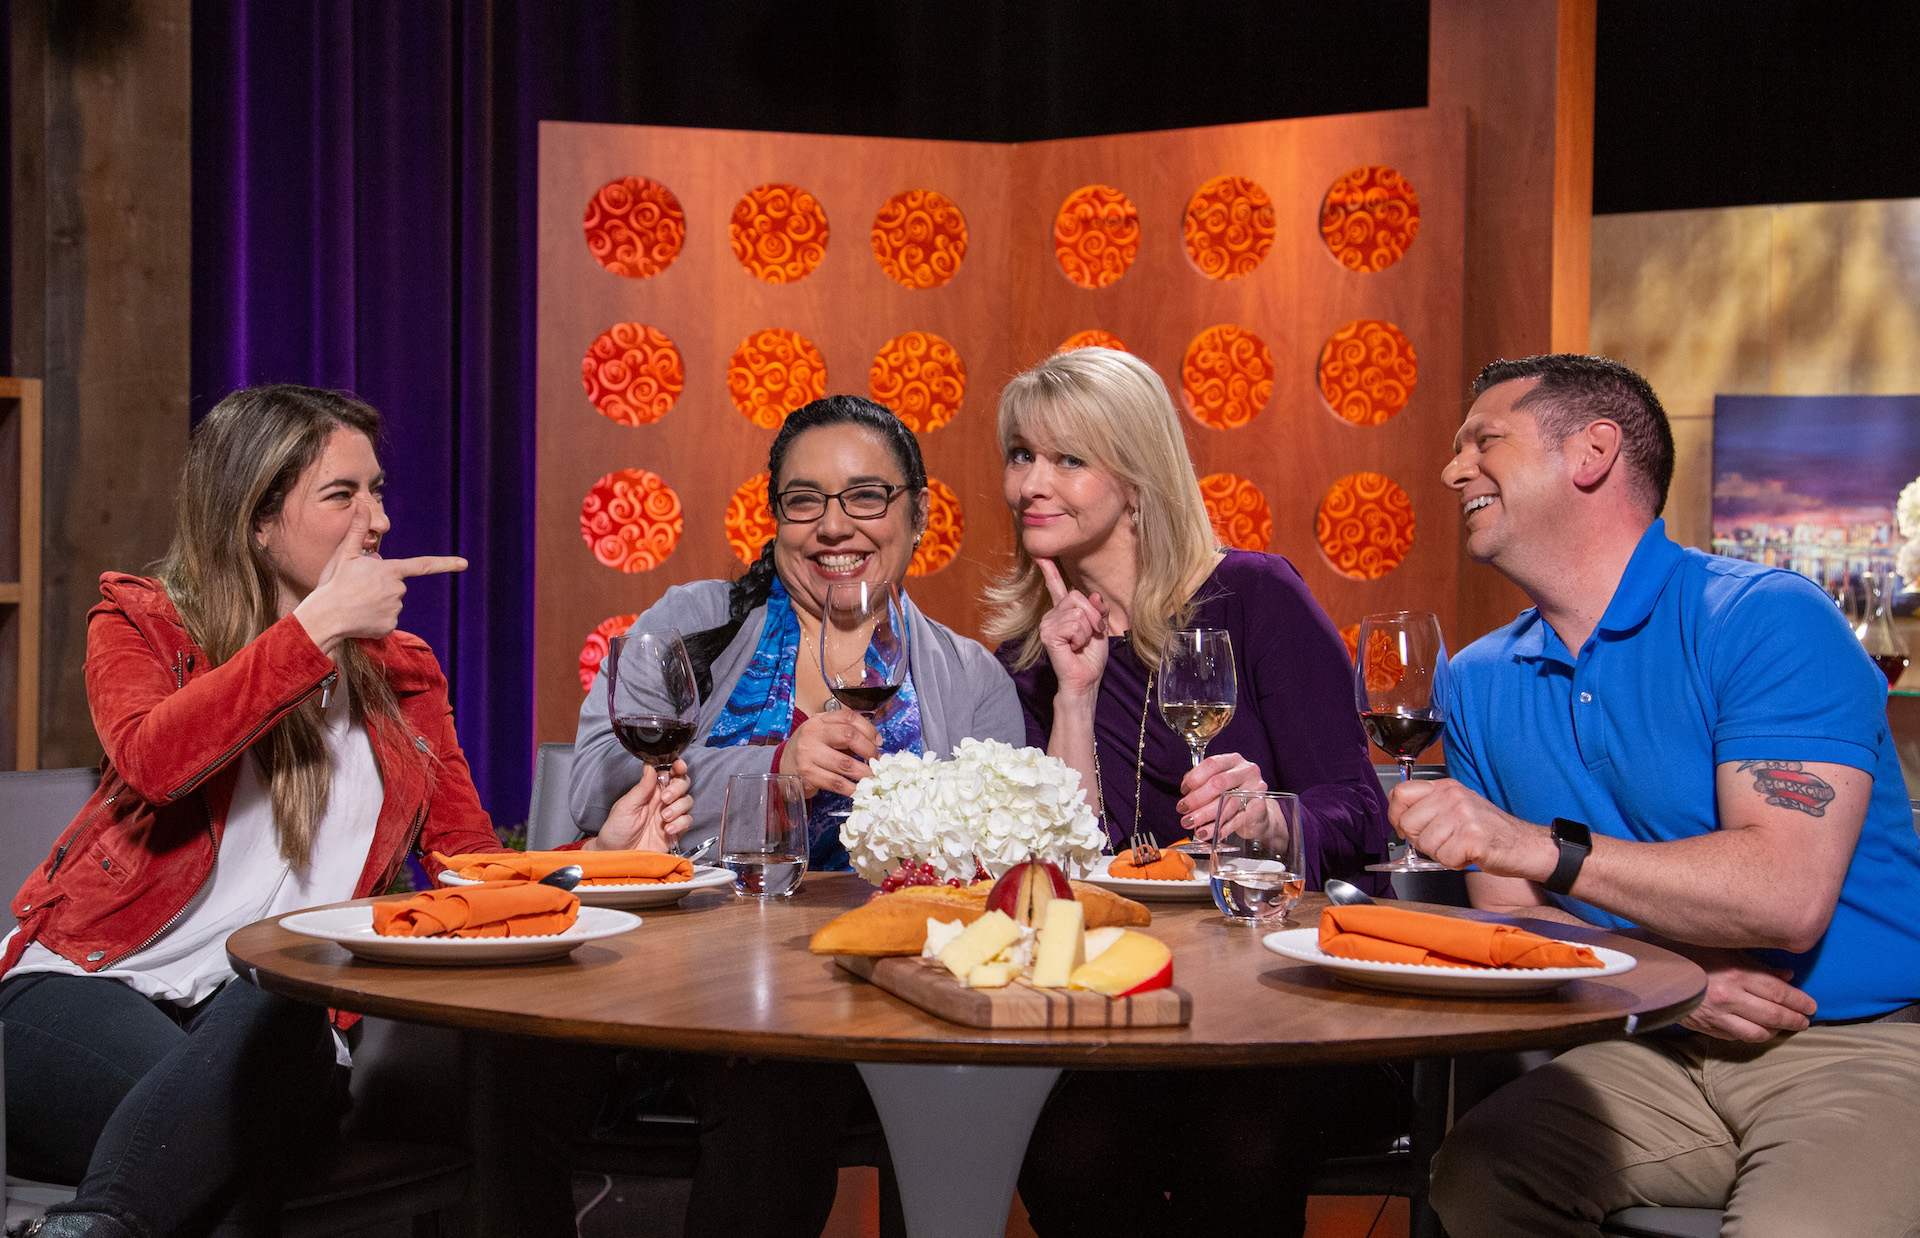 Host Leslie Sbrocco and guests on the set of season 14 episode 16.